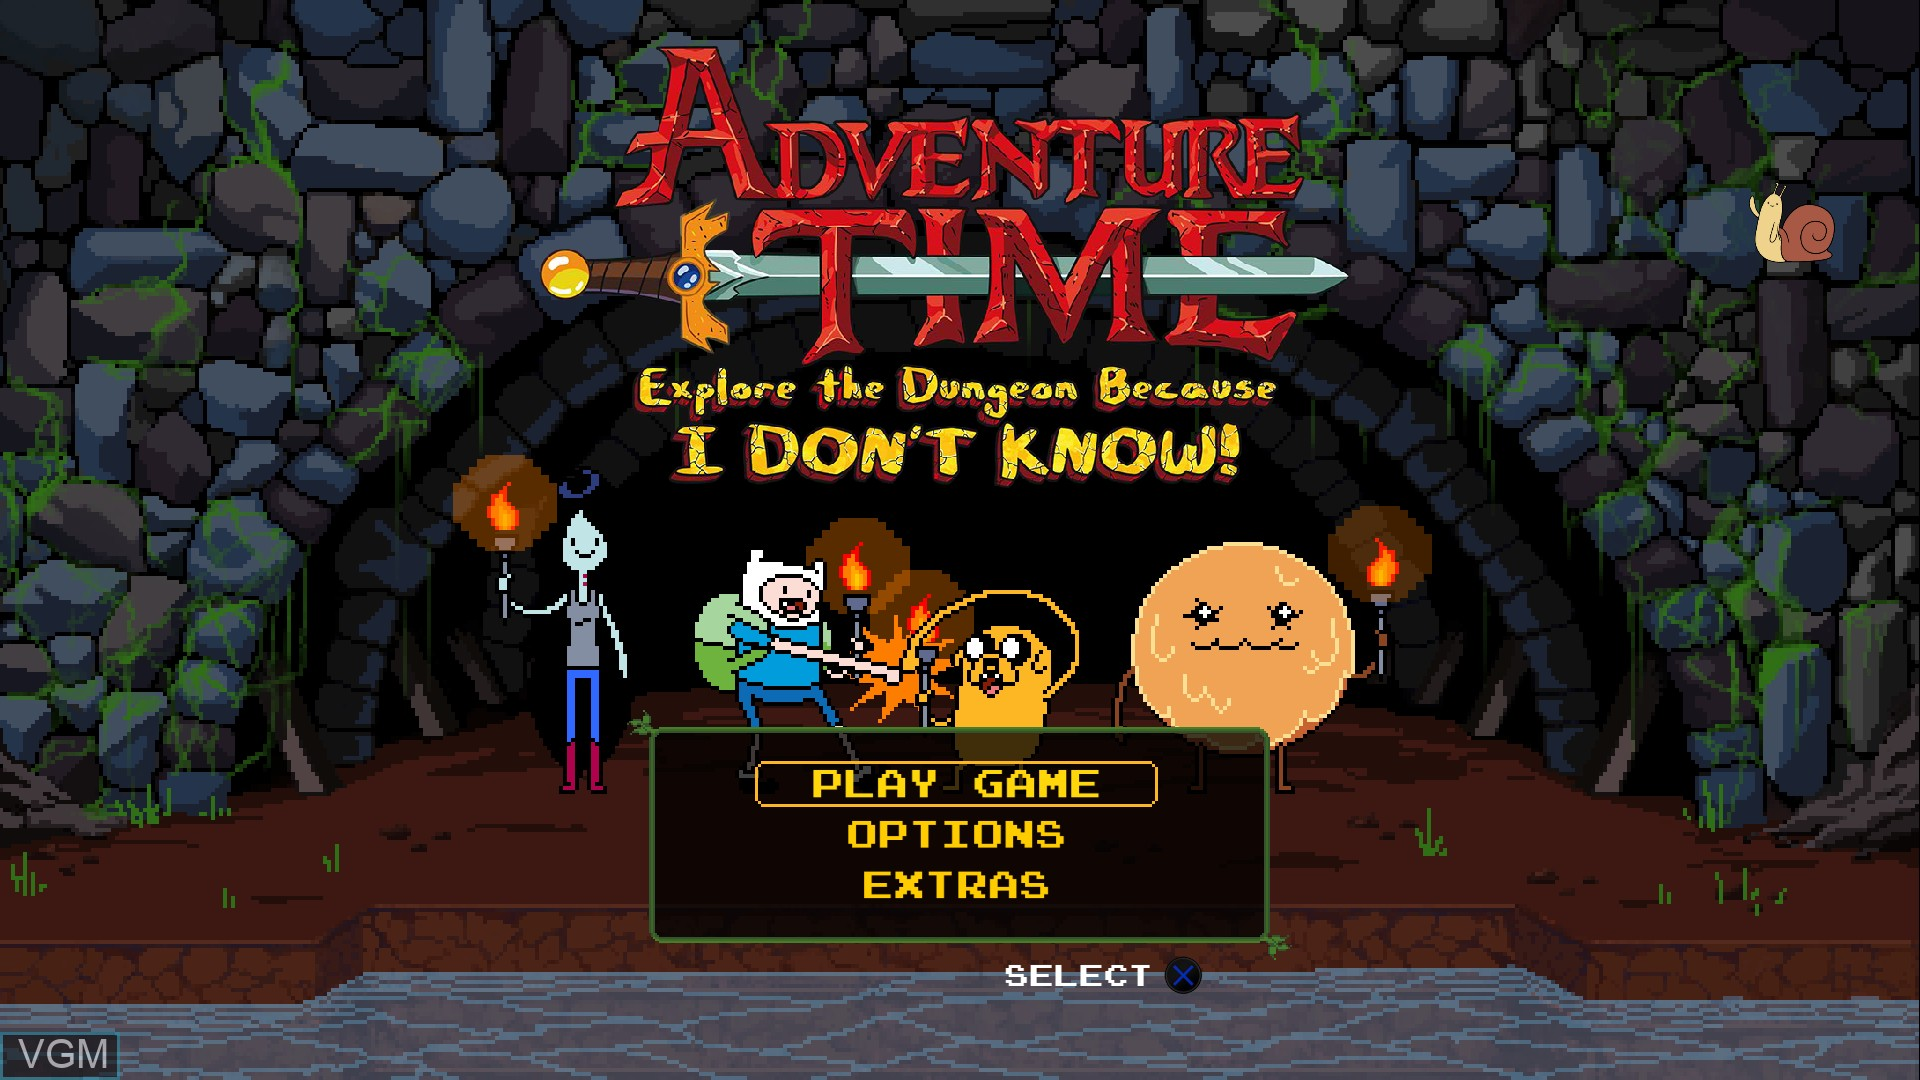 Image du menu du jeu Adventure Time - Explore the Dungeon Because I DON'T KNOW! sur Sony Playstation 3